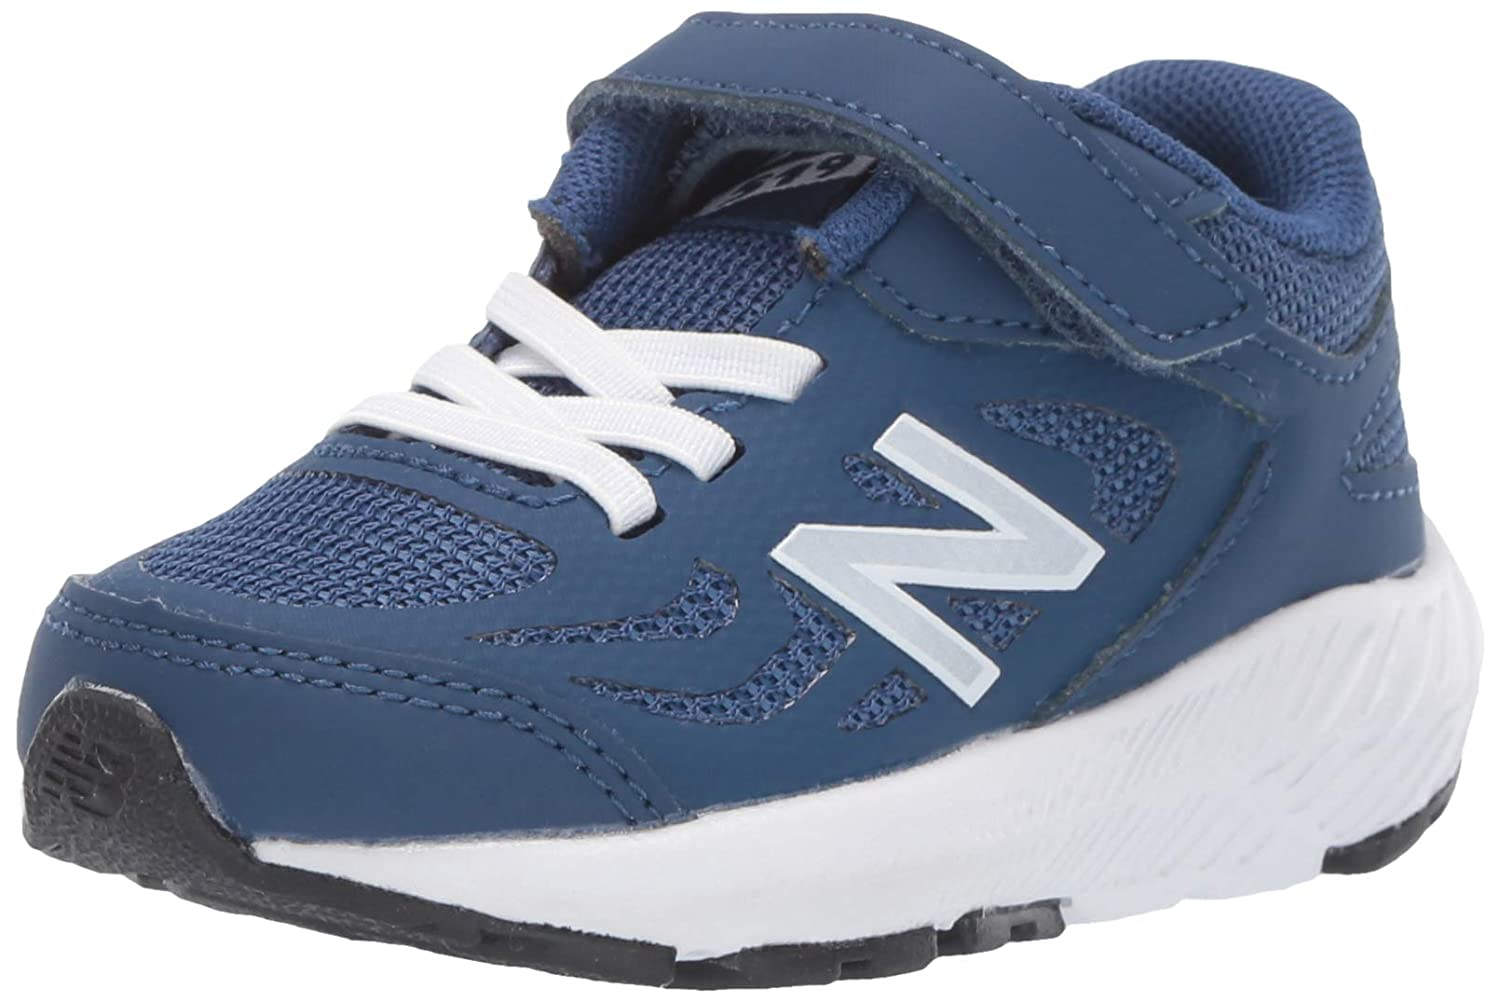 Mgoldccan Tile White 13.5 XWide Little Kid New Balance Girls 519v1 Hook and Loop Running shoes